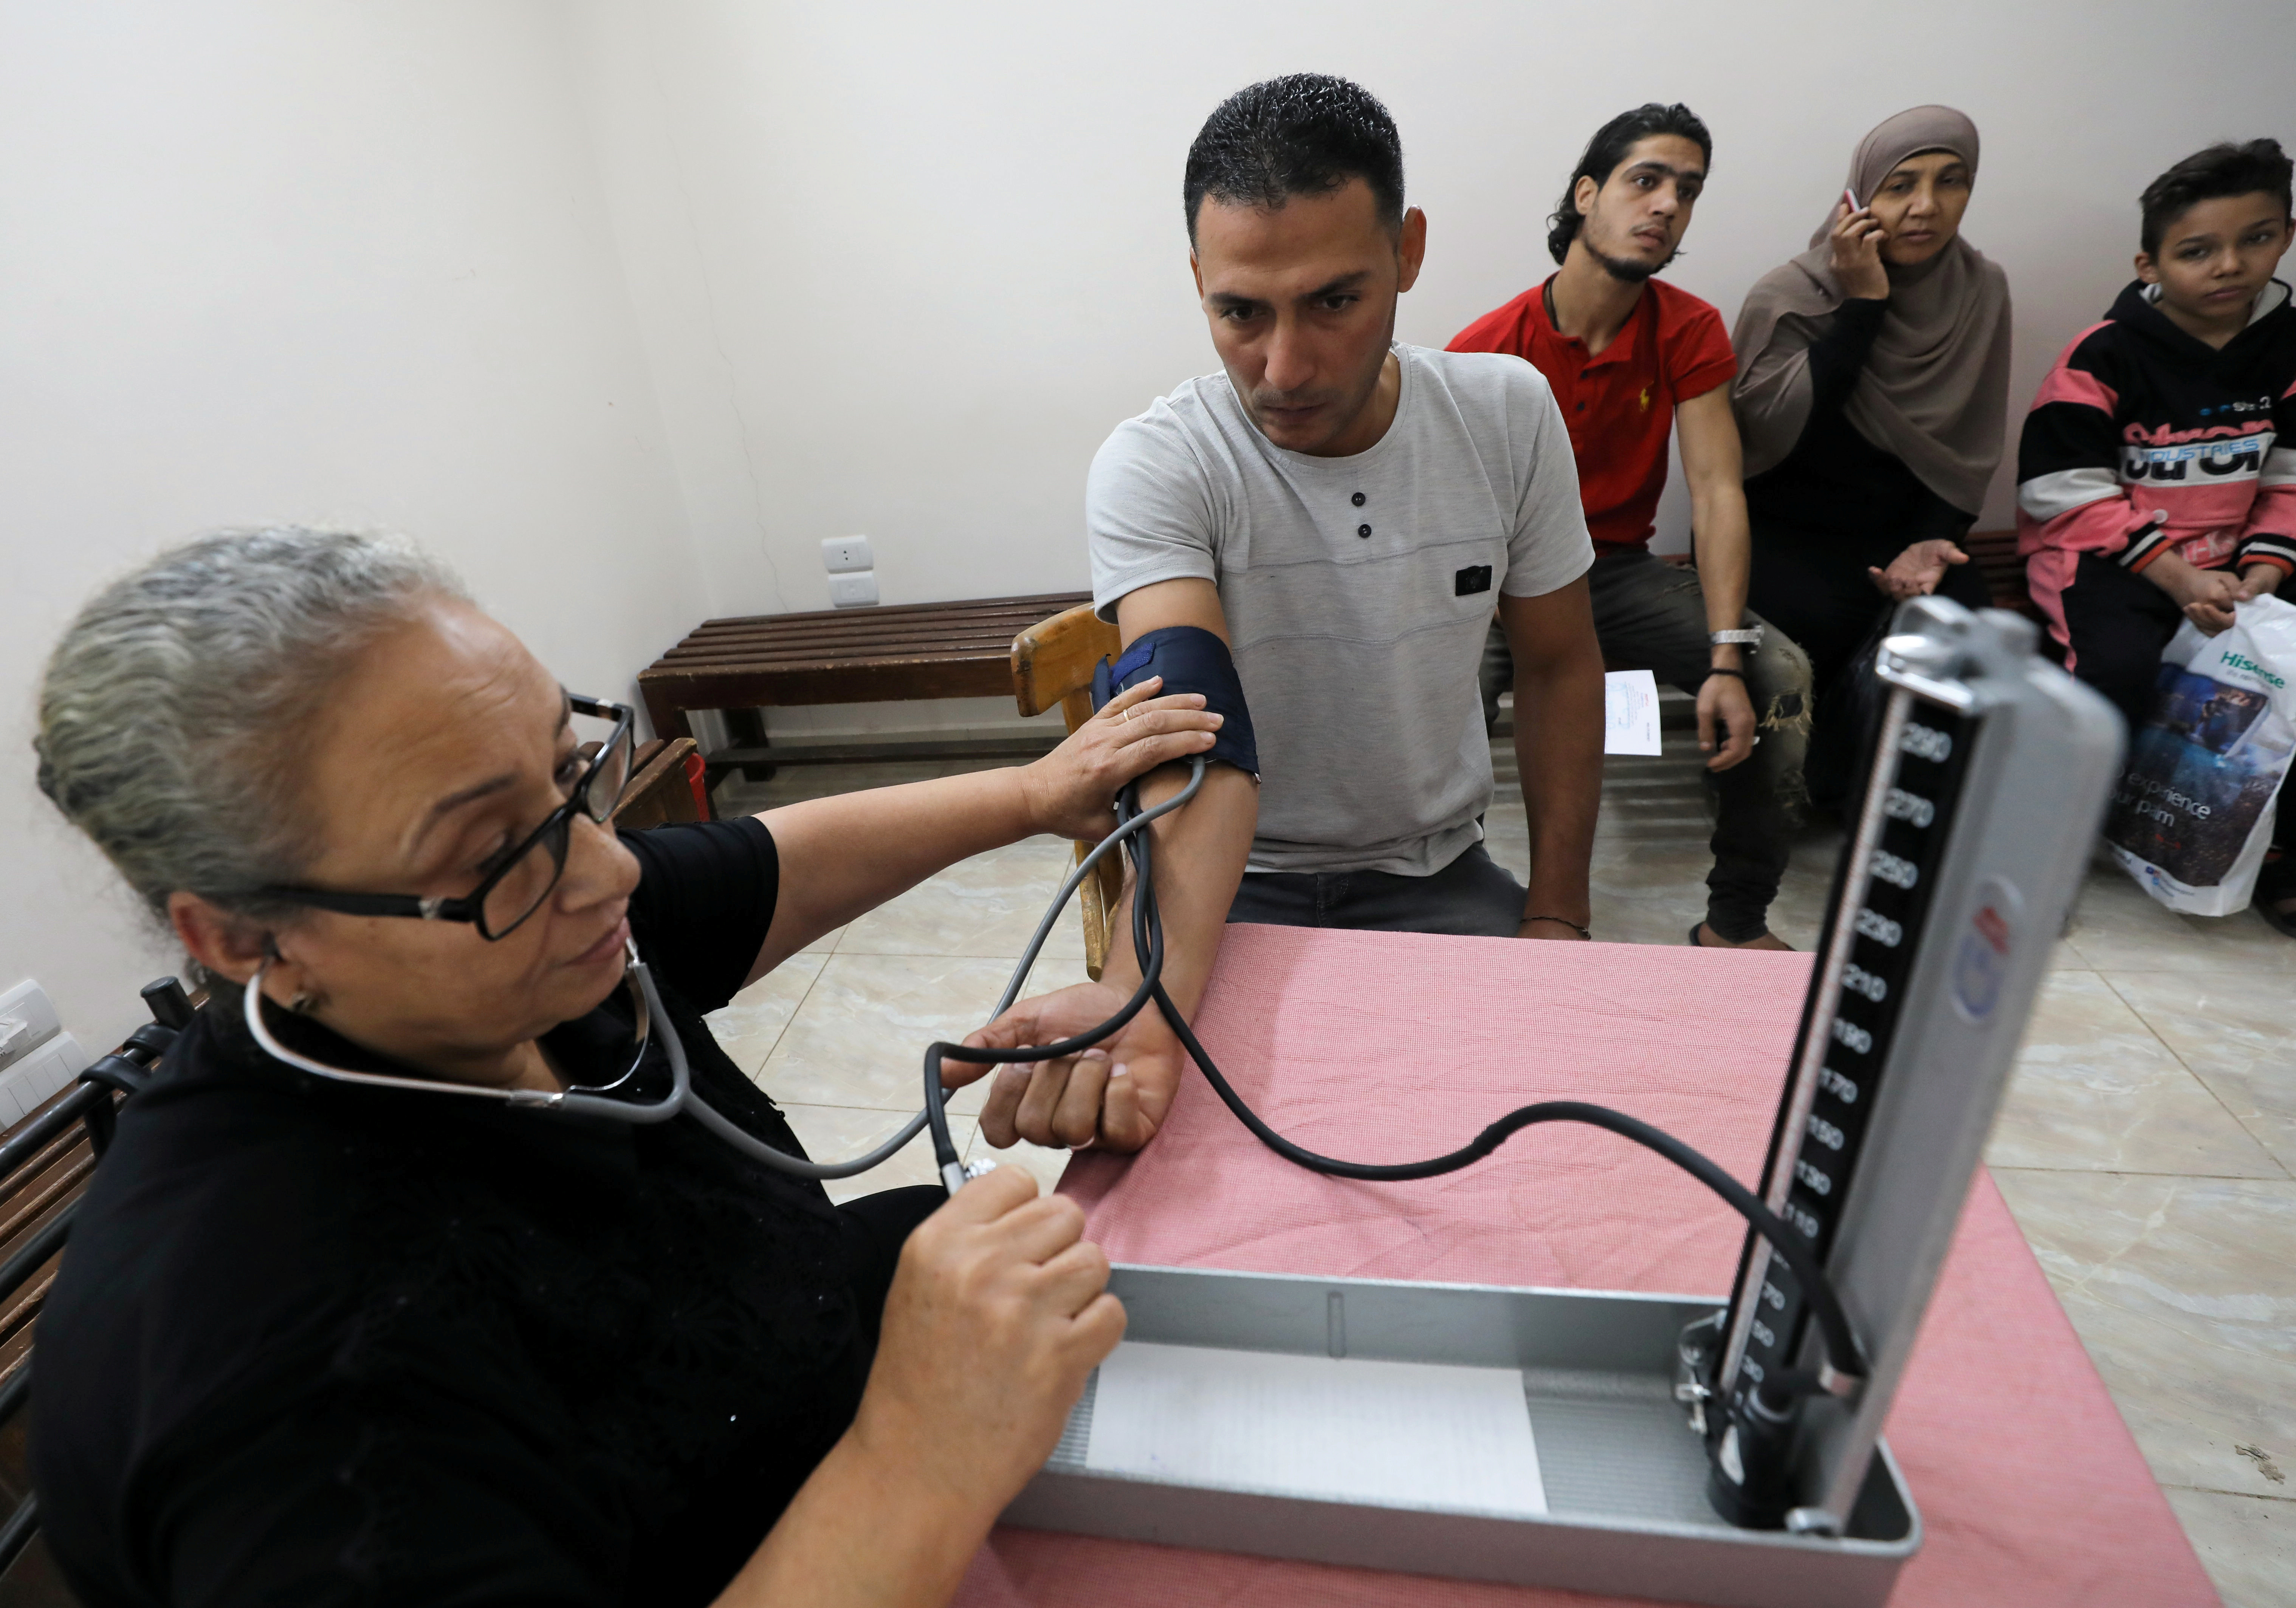 An Egyptian doctor makes a test during an unprecedented campaign that aims to test 50 million people to detect and treat hepatitis C patients in a bid to eliminate the disease by 2022, in Cairo, Egypt November 11, 2018. Picture taken November 11, 2018. REUTERS/Mohamed Abd El Ghany - RC150836B250